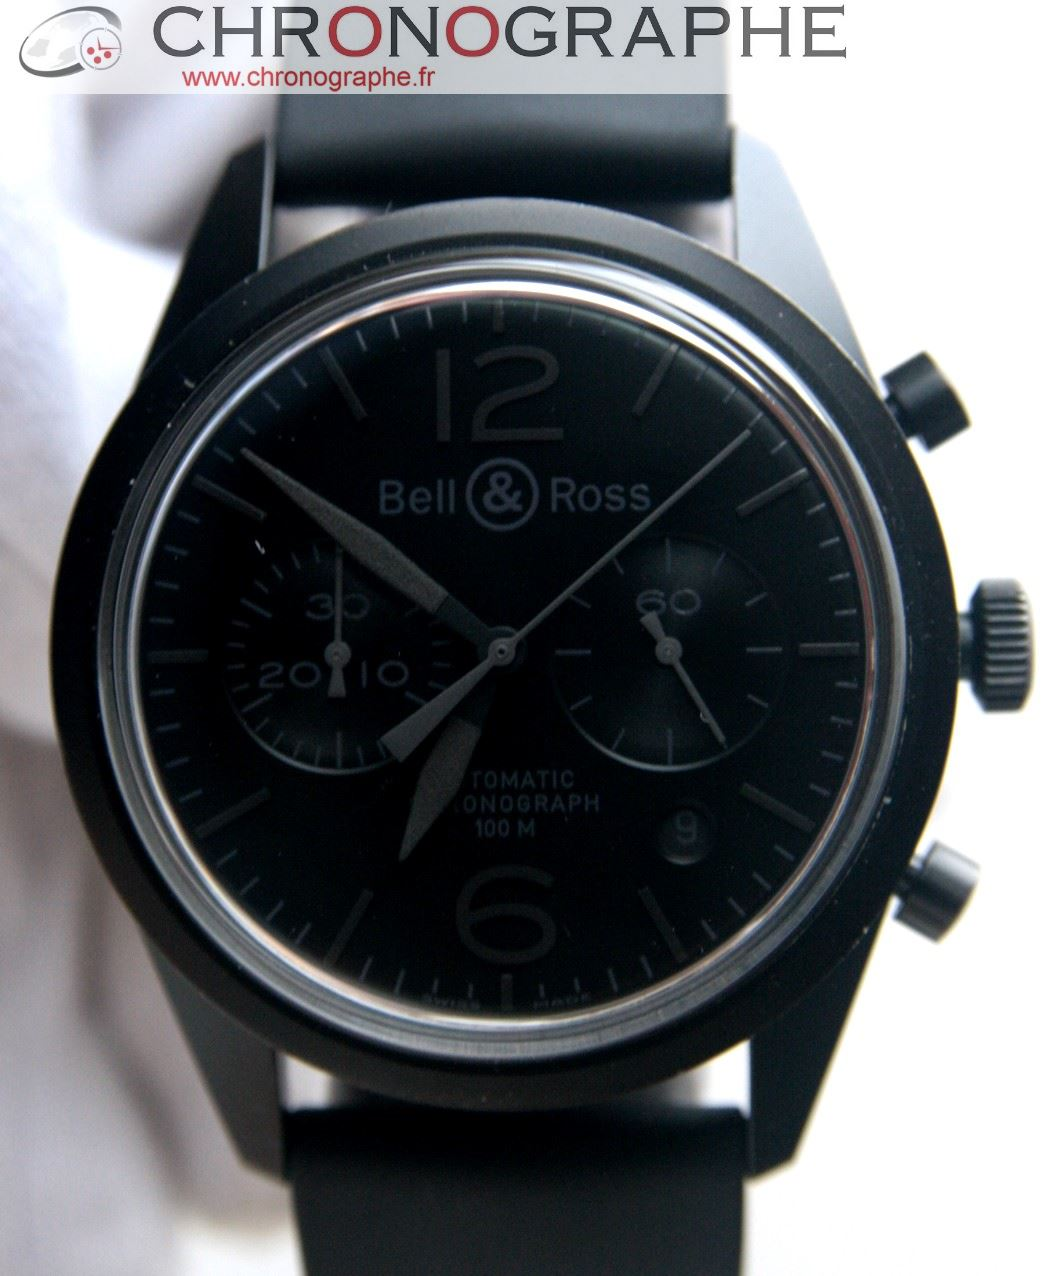 BELL & ROSS BR126 - 94 PHANTOM Bell&Ross